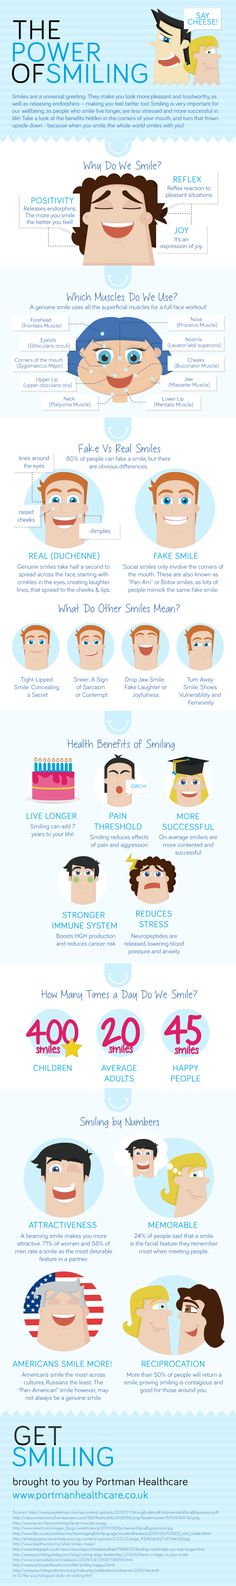 "The Power of Smiling Infographic - ""Smiling — the purest expression of happiness — has the ability to regulate our blood pressure, strengthen our immune system, lower the risk of cancer, increase our life by seven years, and provide inner peace and satisfaction. The good news is that it doesn't cost a thing."" What's Getting in your Way: https://www.pinterest.com/addfreesources/whats-getting-in-your-way-psychological-help/"